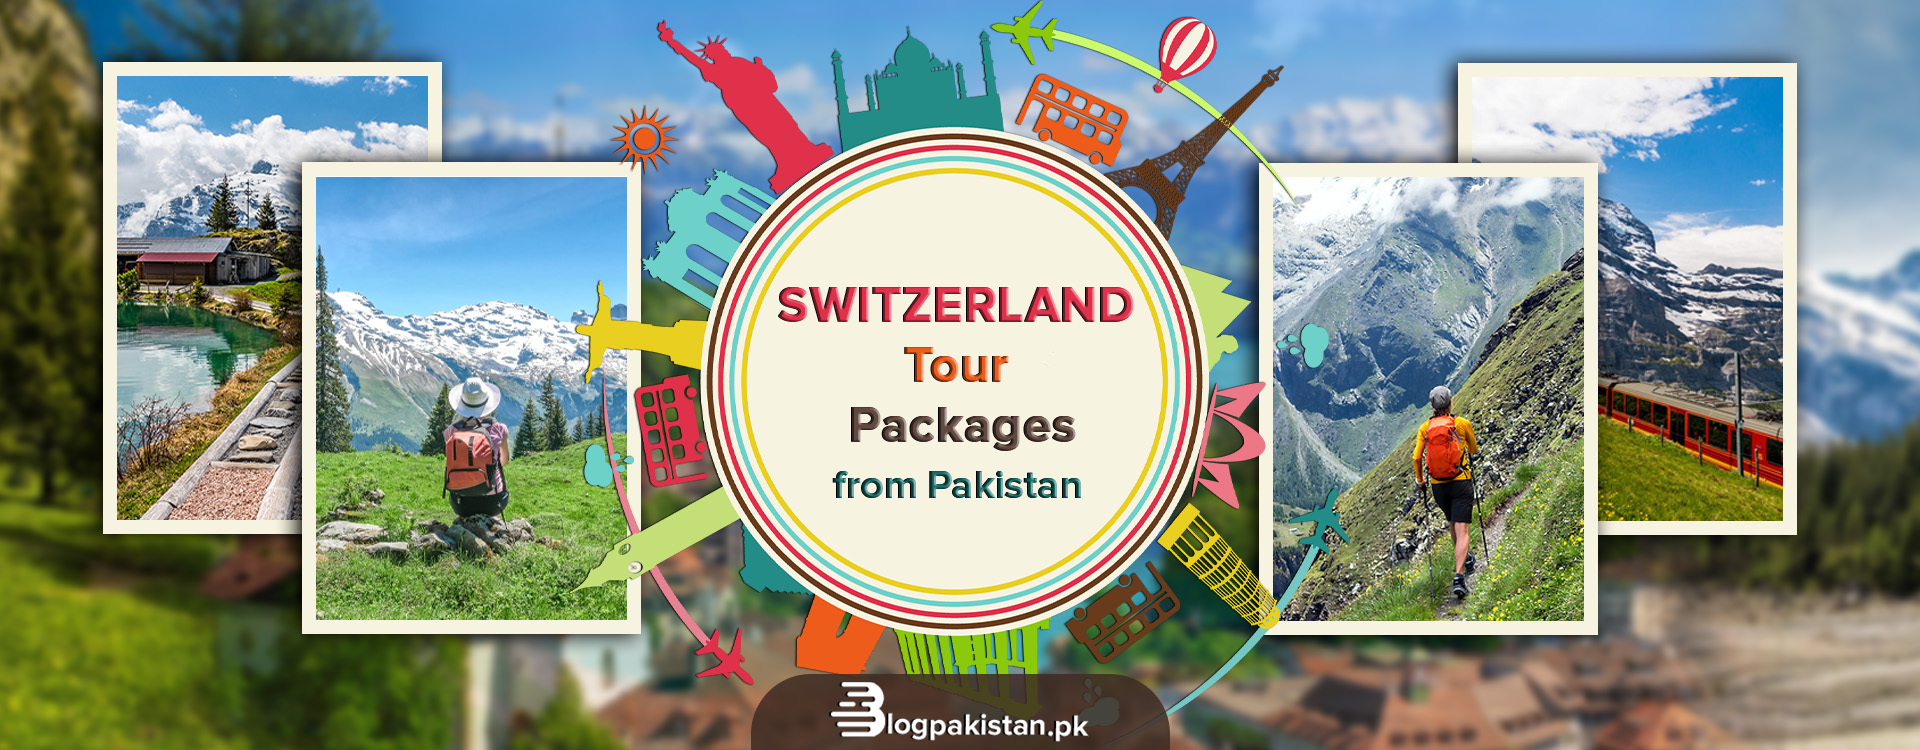 Switzerland Tour Packages from Pakistan